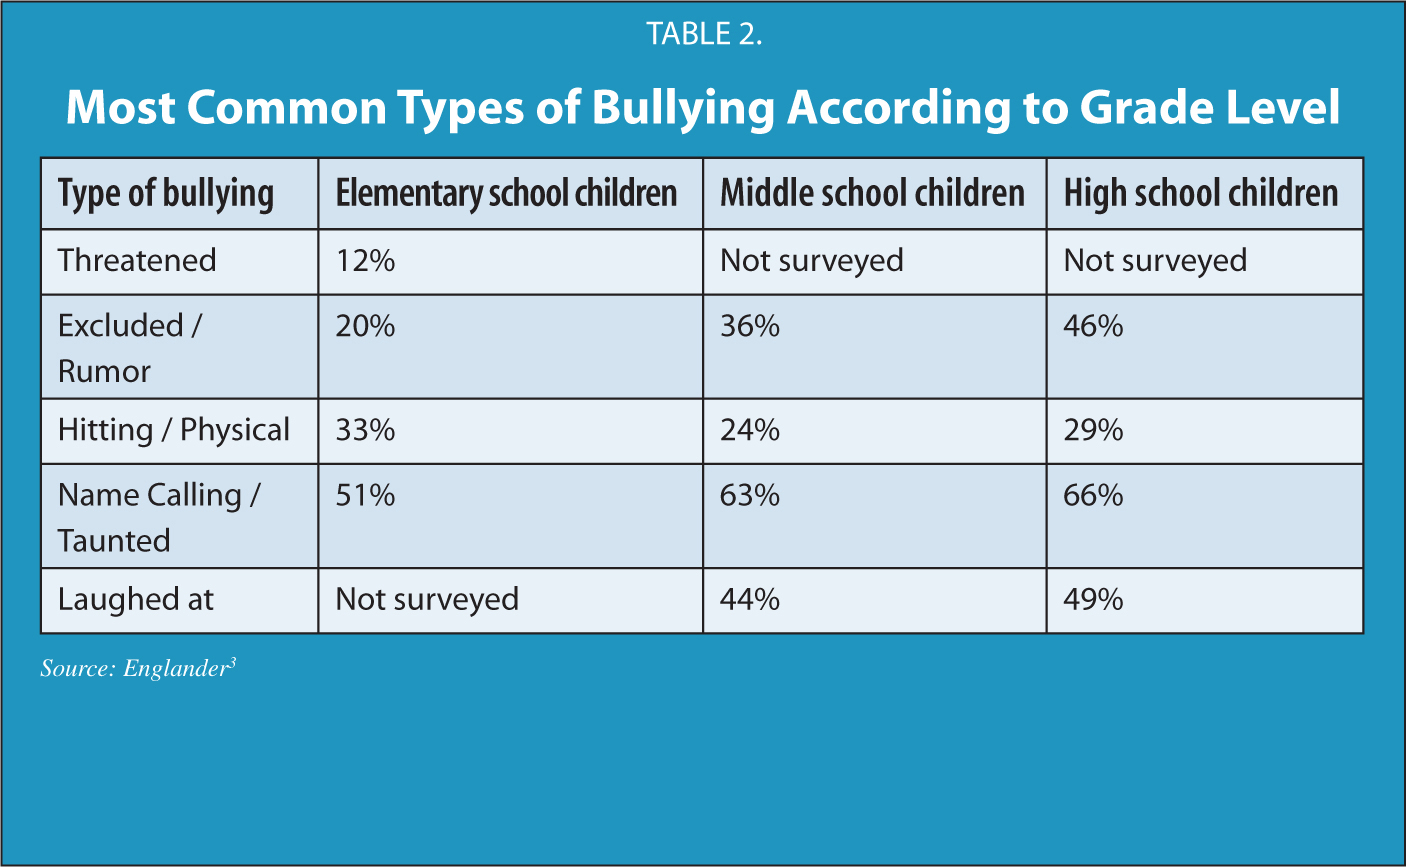 Most Common Types of Bullying According to Grade Level